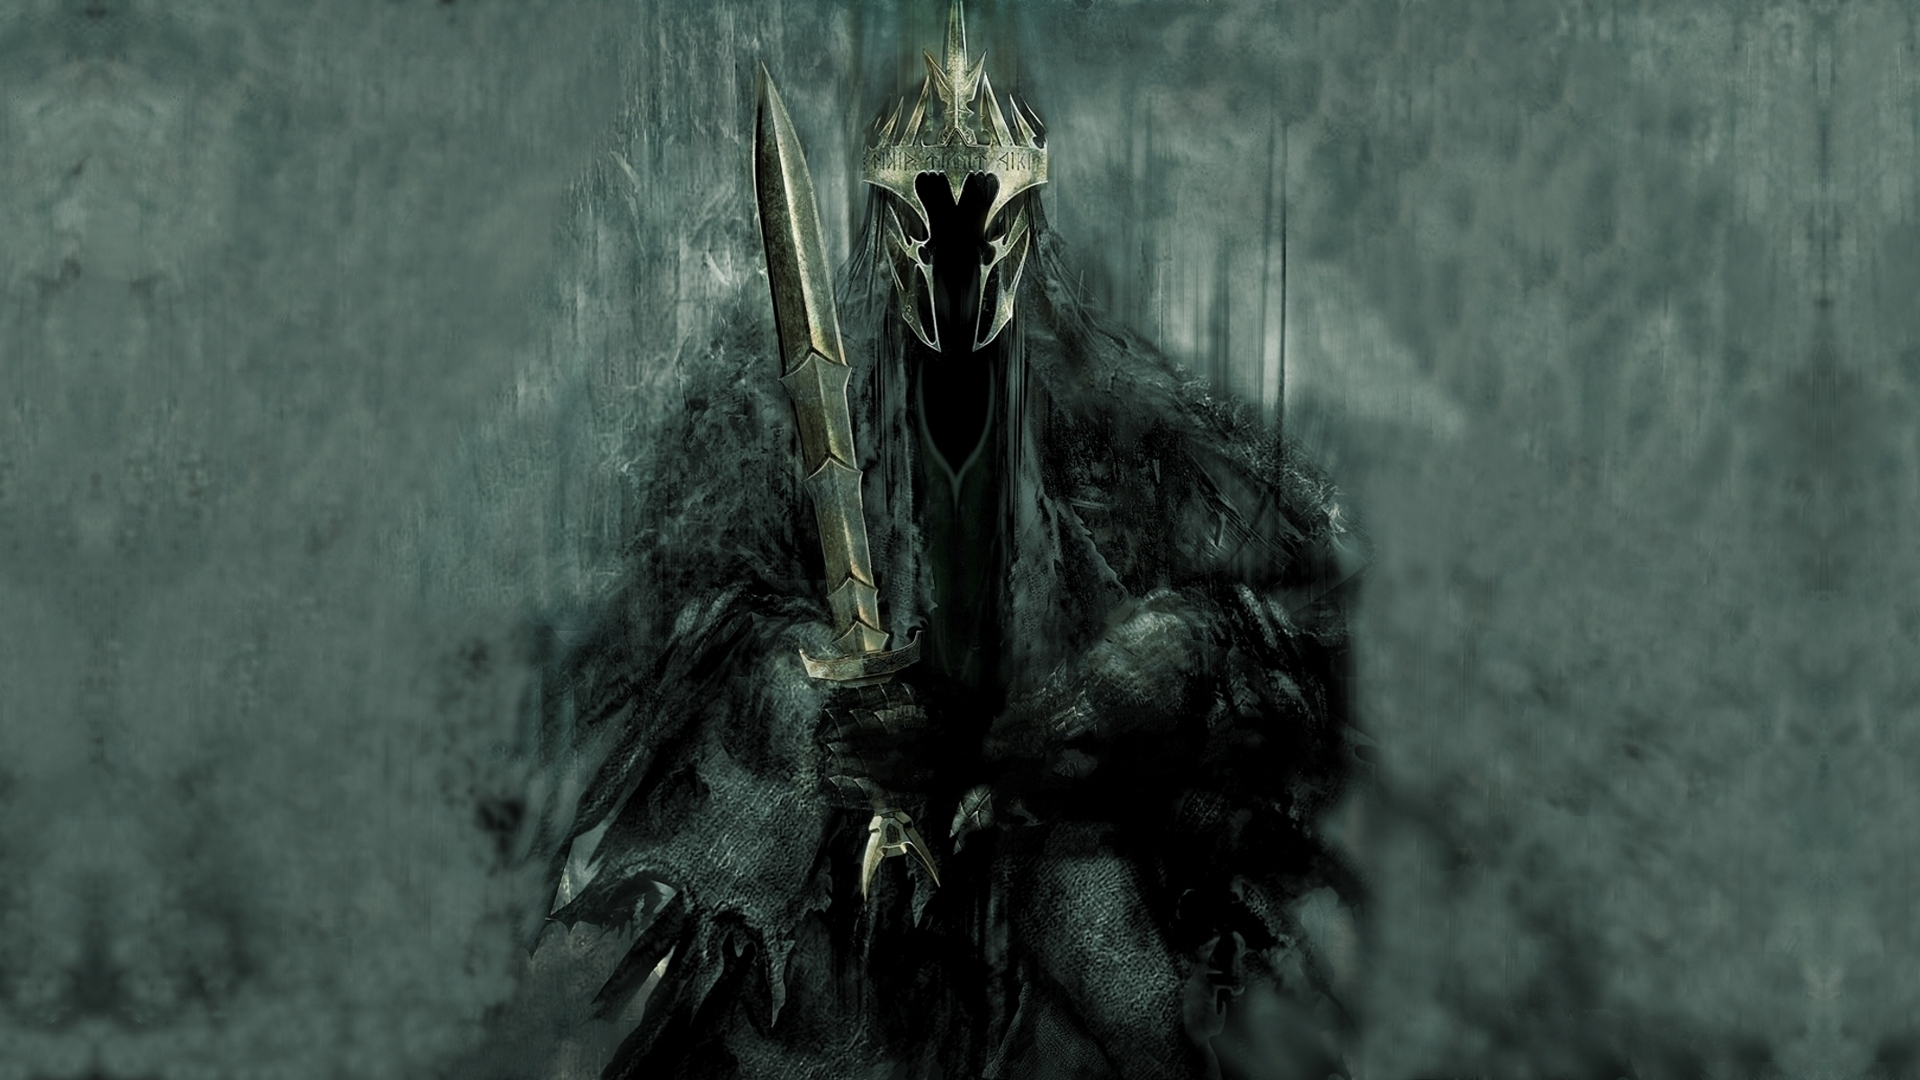 Lord of the Rings THE WITCH KING full HD